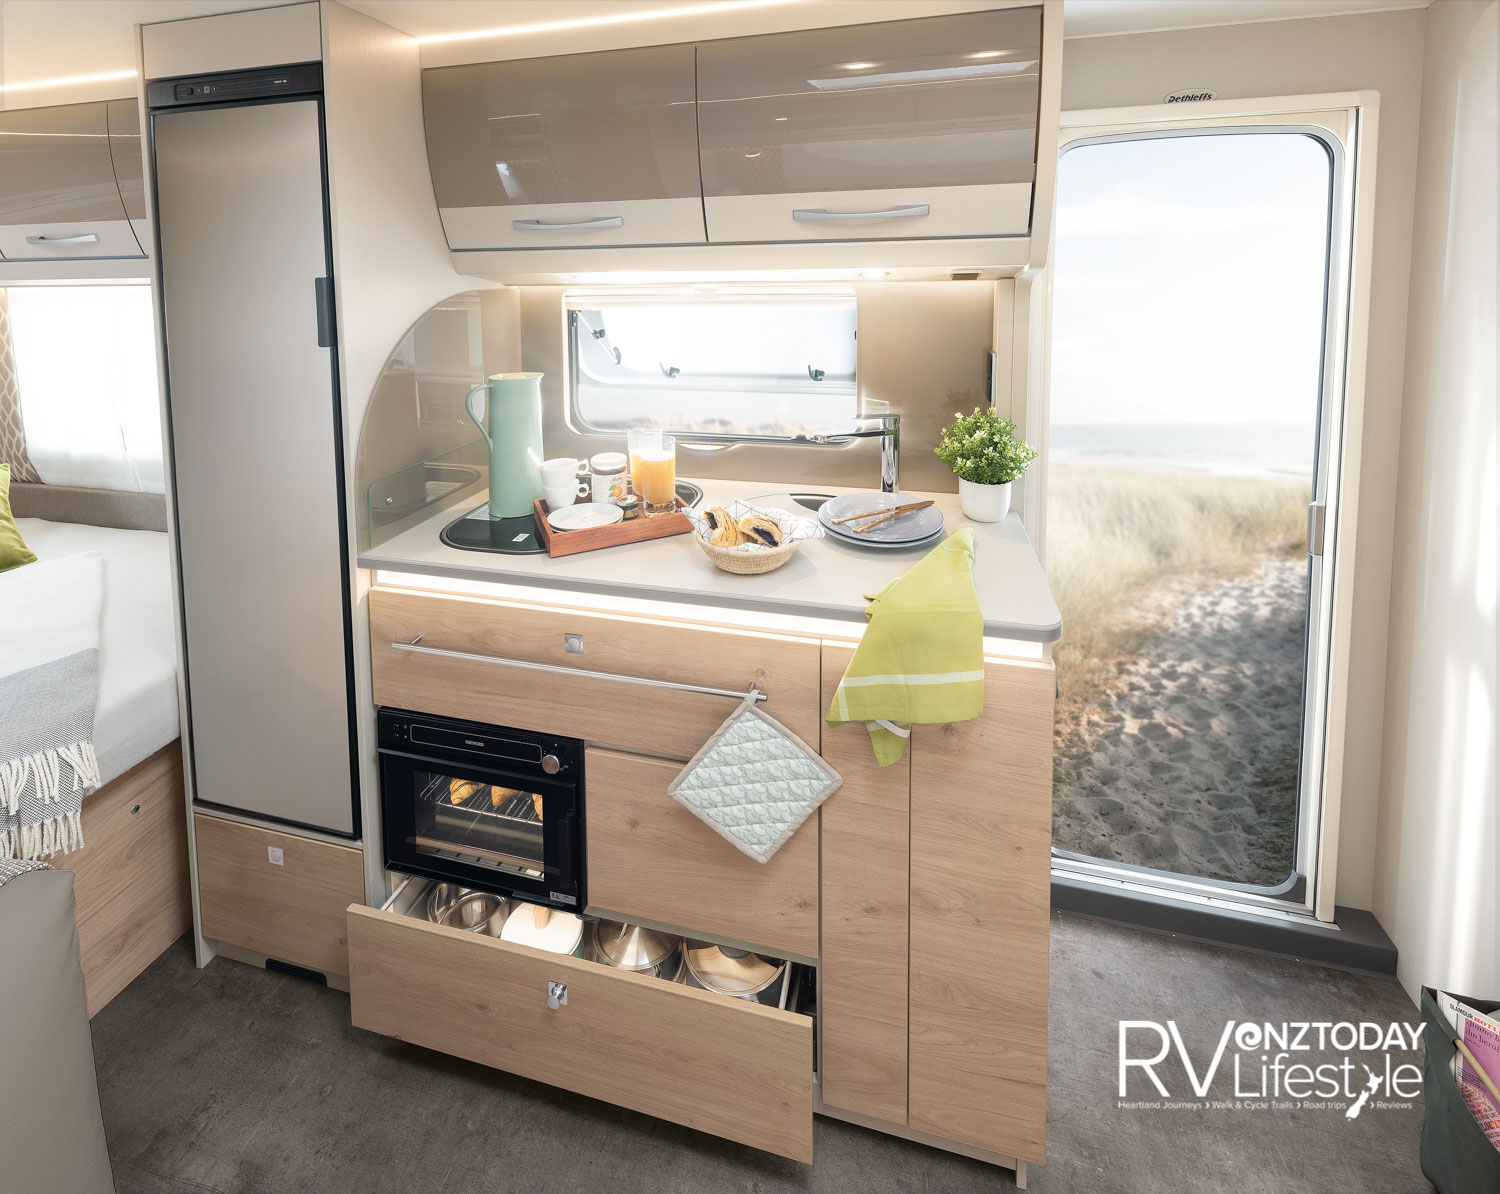 Fully featured kitchen with under-bench gas oven, three gas-burner hob on the bench, soft-close drawers and illuminated splashback. Large 142L fridge unit with storage below